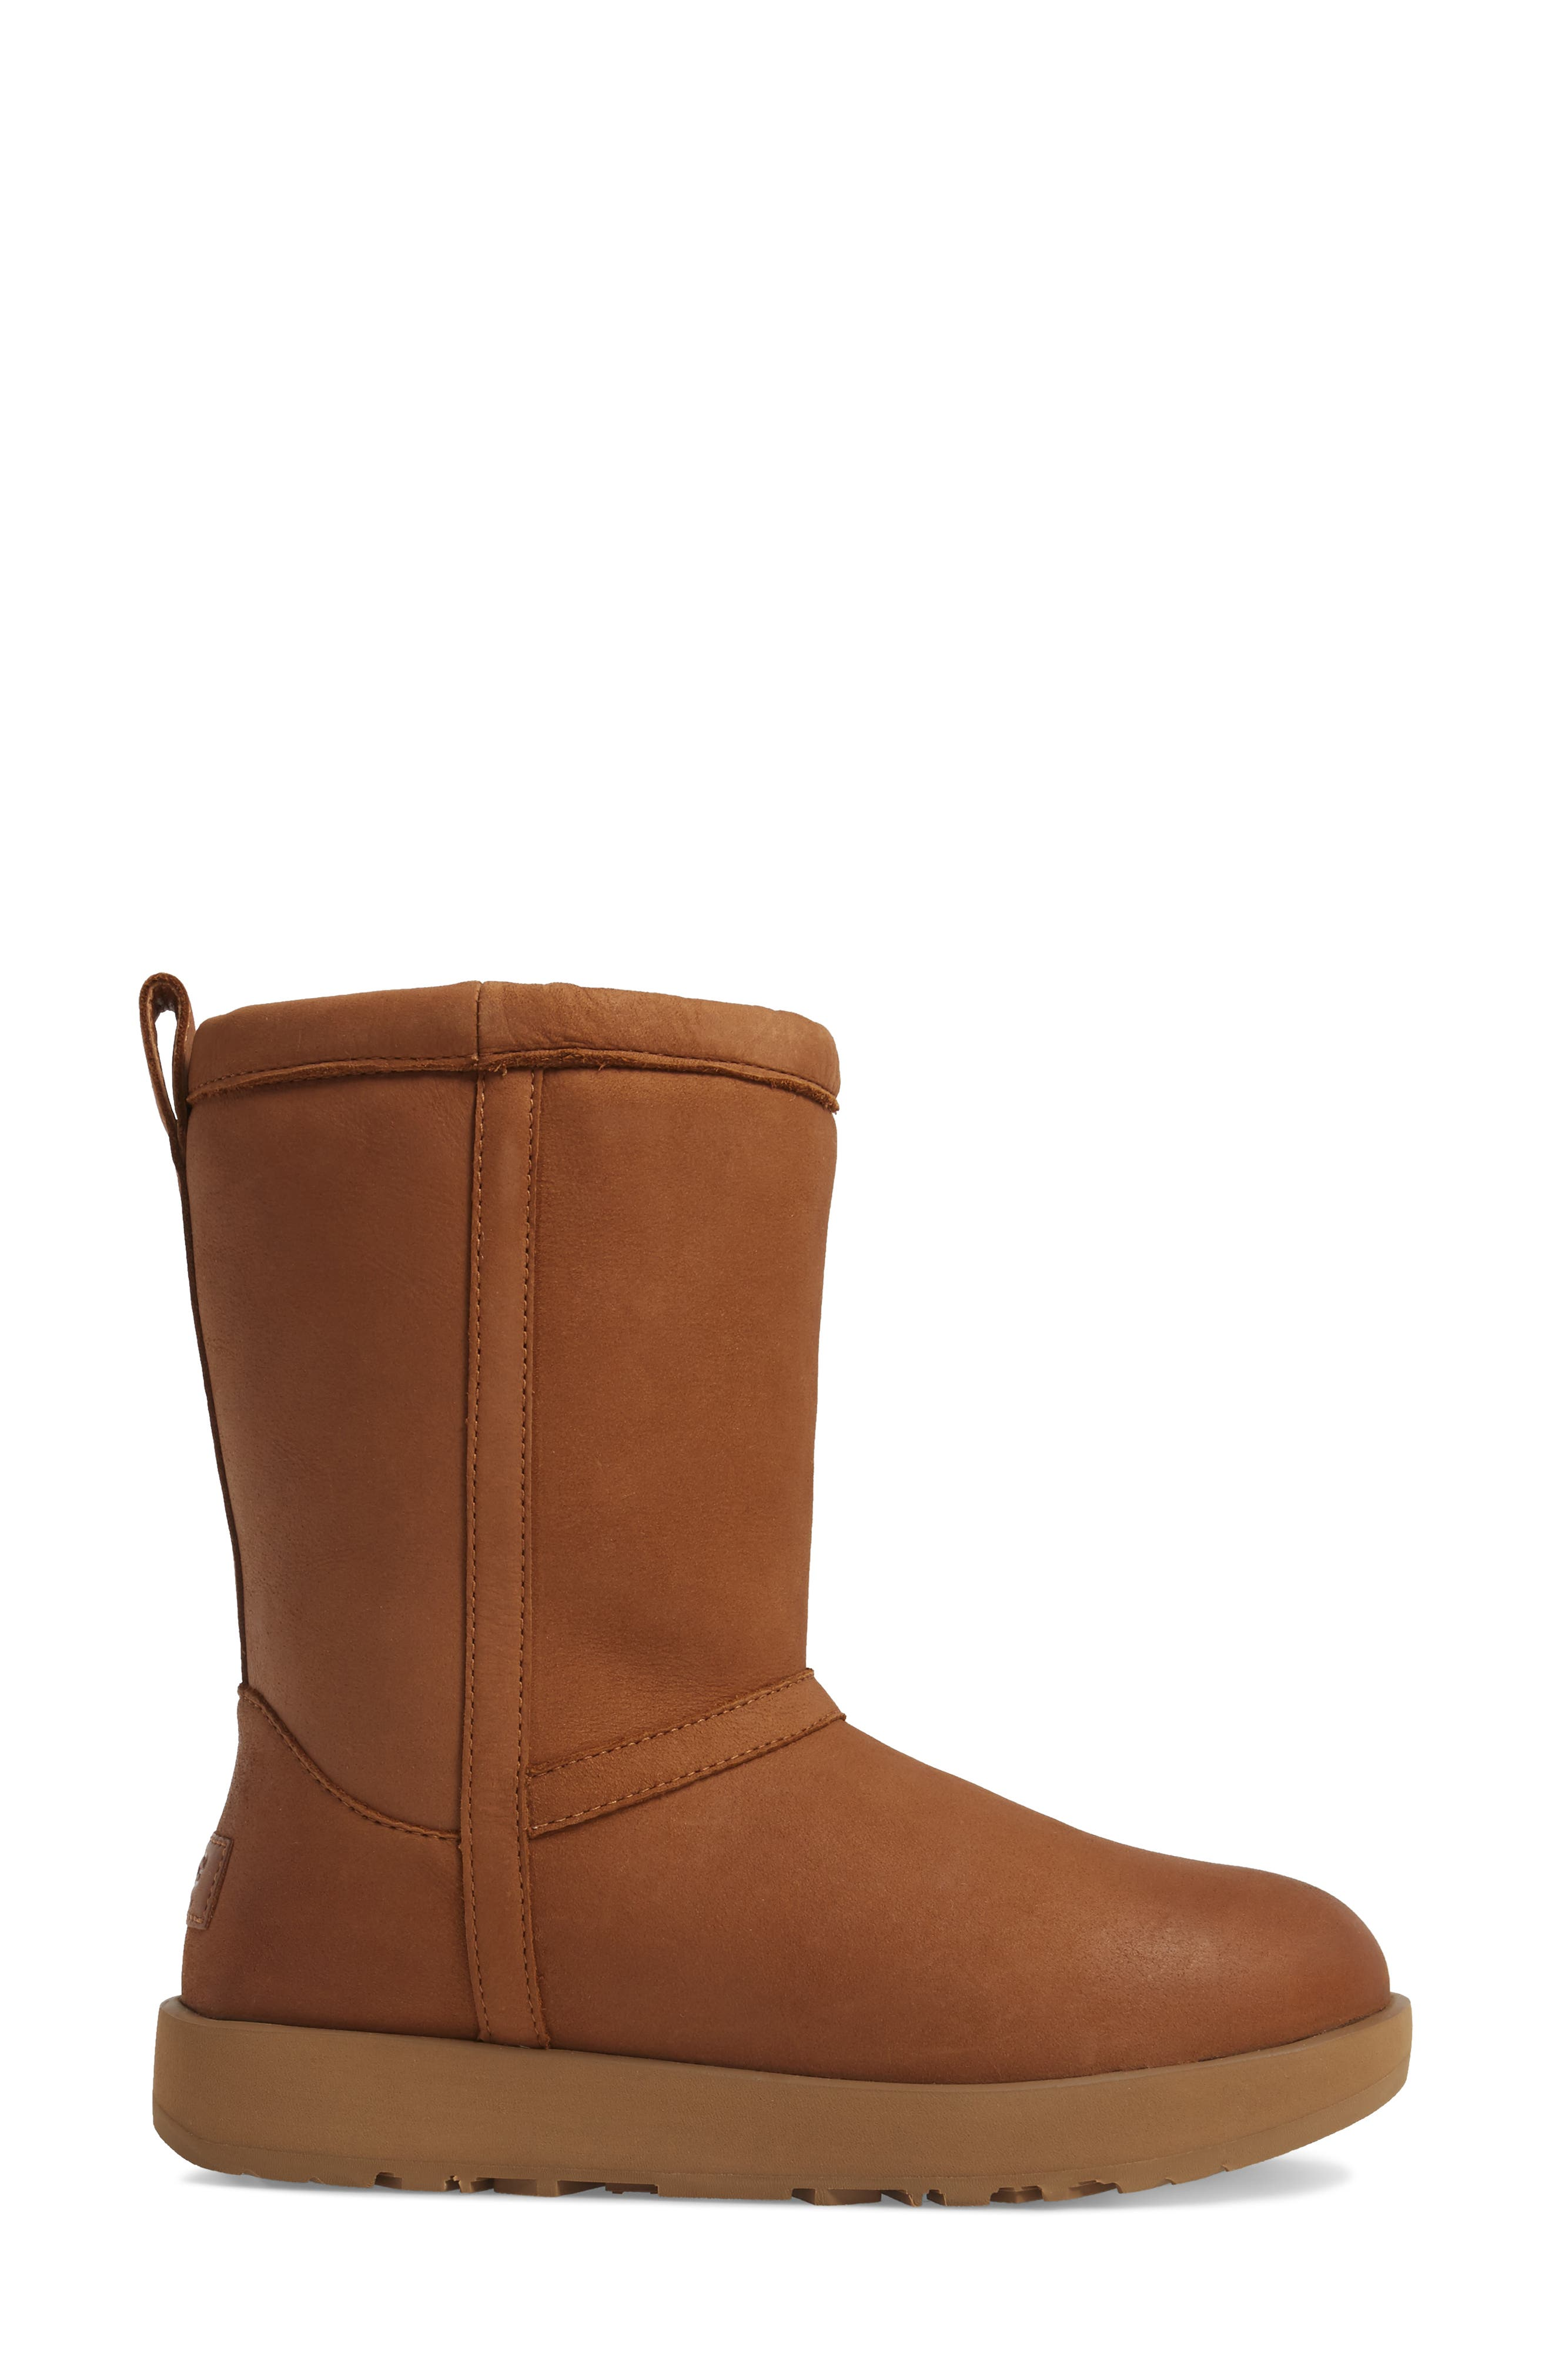 Classic Genuine Shearling Lined Short Waterproof Boot,                             Alternate thumbnail 3, color,                             Chestnut Leather